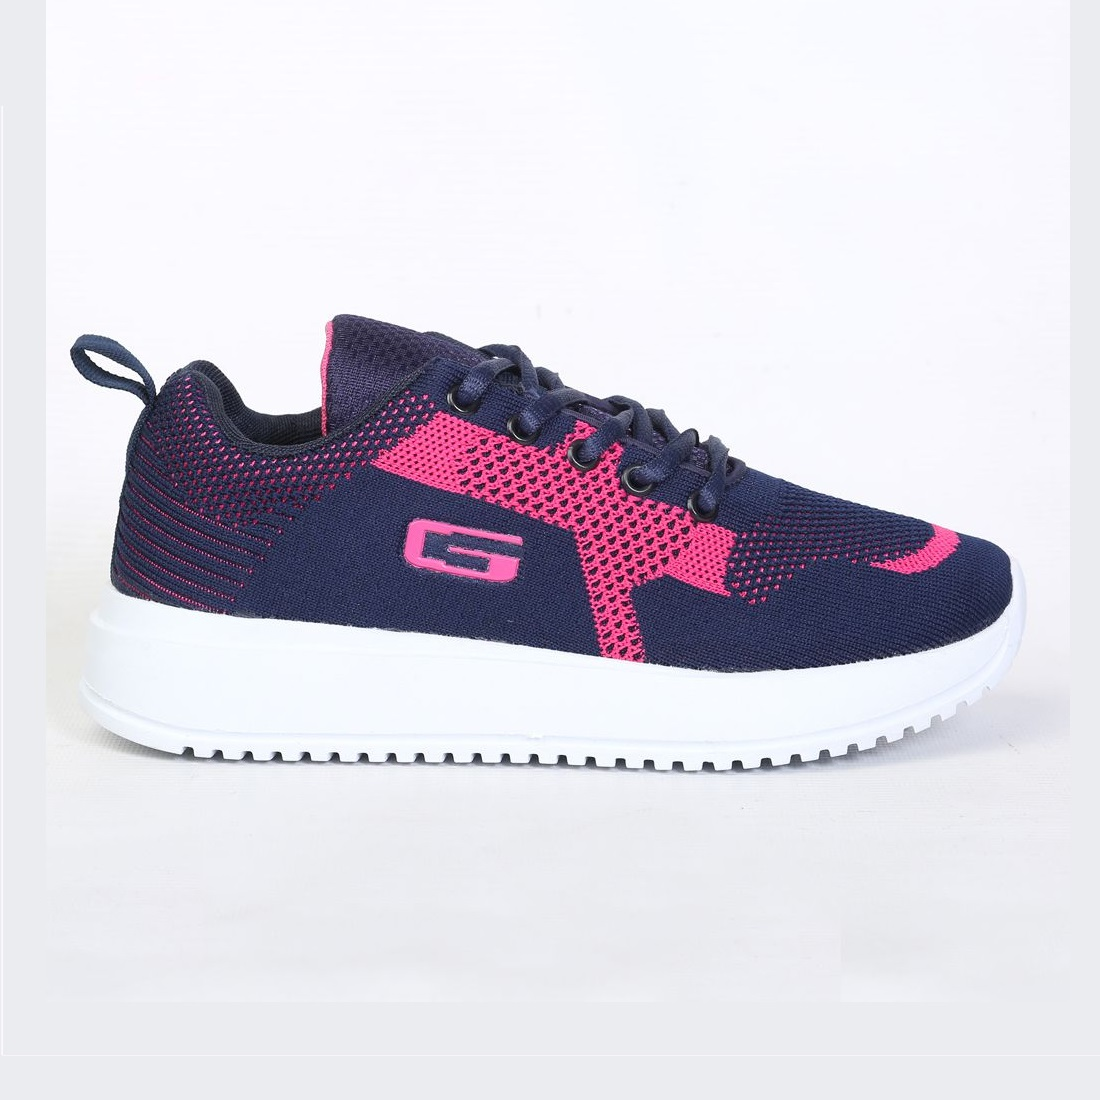 Goldstar Pink Sports Shoes For Women - G10 L1001